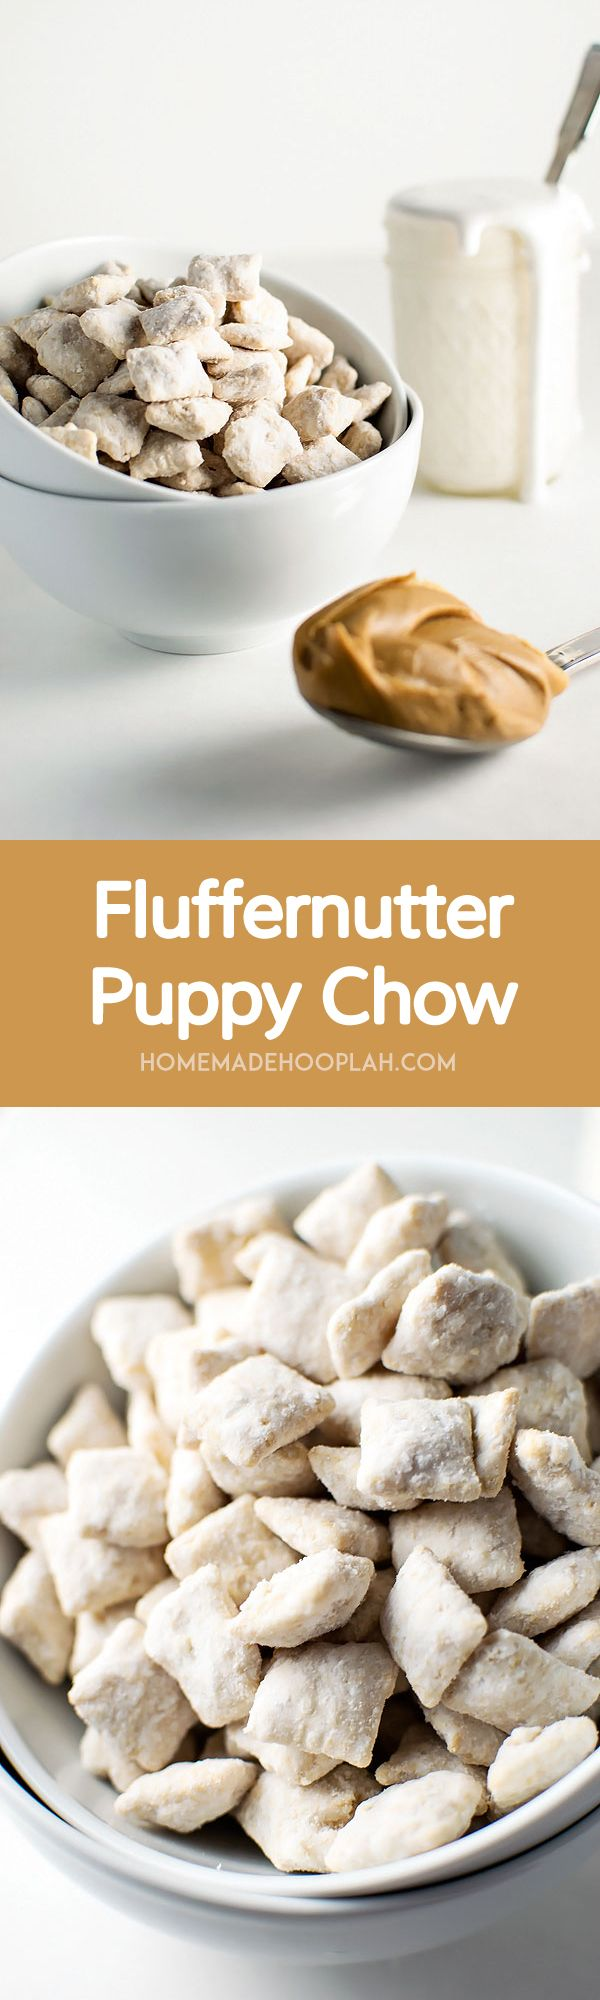 Fluffernutter Puppy Chow! The delicious taste of fluffernutter (peanut butter + marshmallow) wrapped around crunchy Chex cereal. It's the perfect snack food in just 15 minutes!   HomemadeHooplah.com